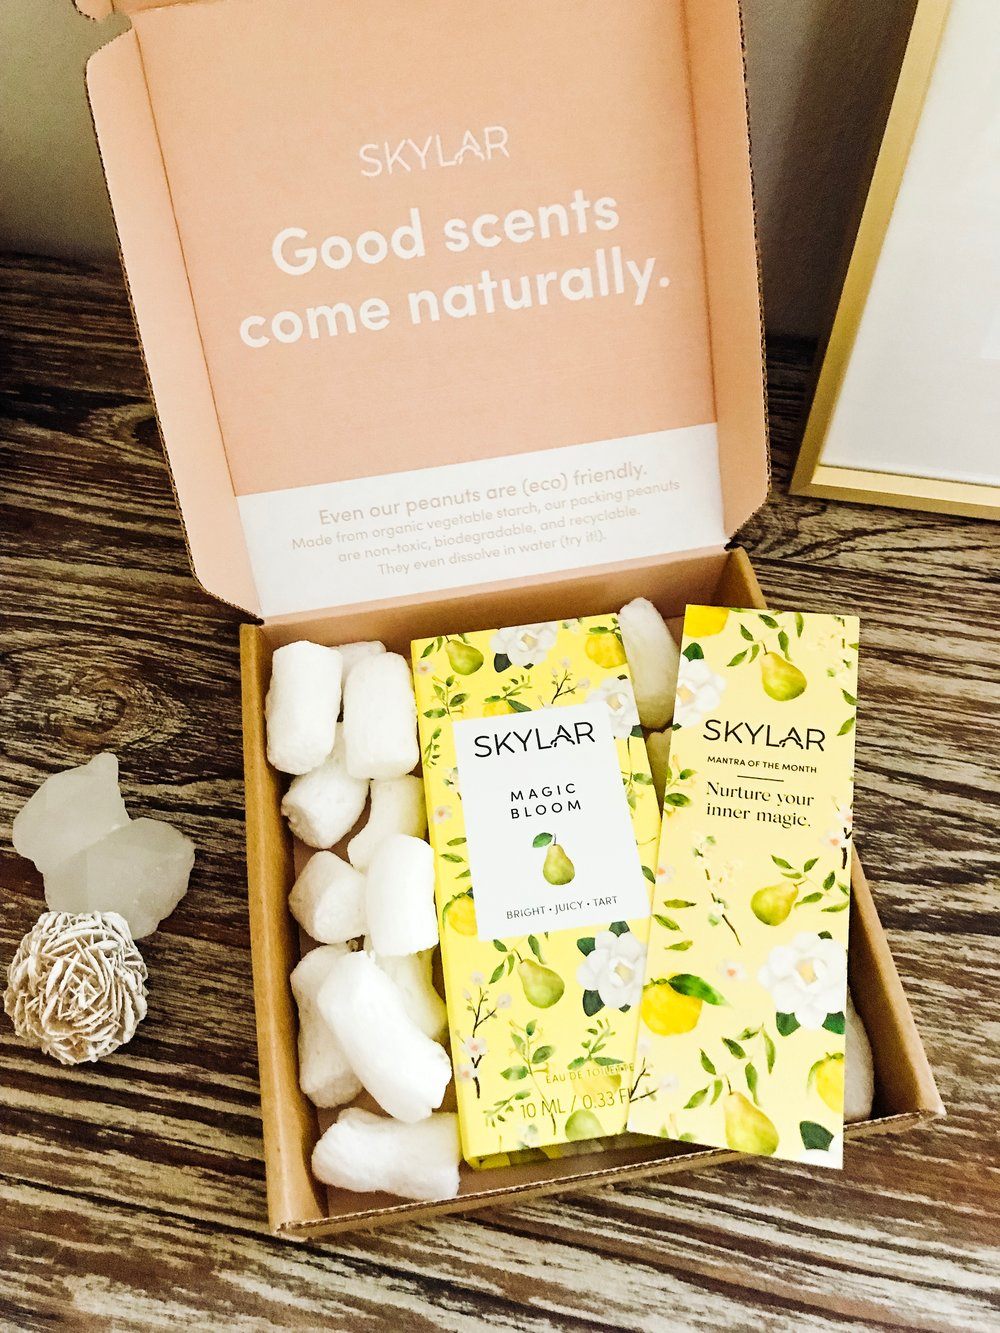 Everything that comes to you is in eco-friendly packaging (something I love!), including their packing peanuts!  Use code: SWIFTRUNNING10 for 10% off any Skylar products, including the Scent Club!